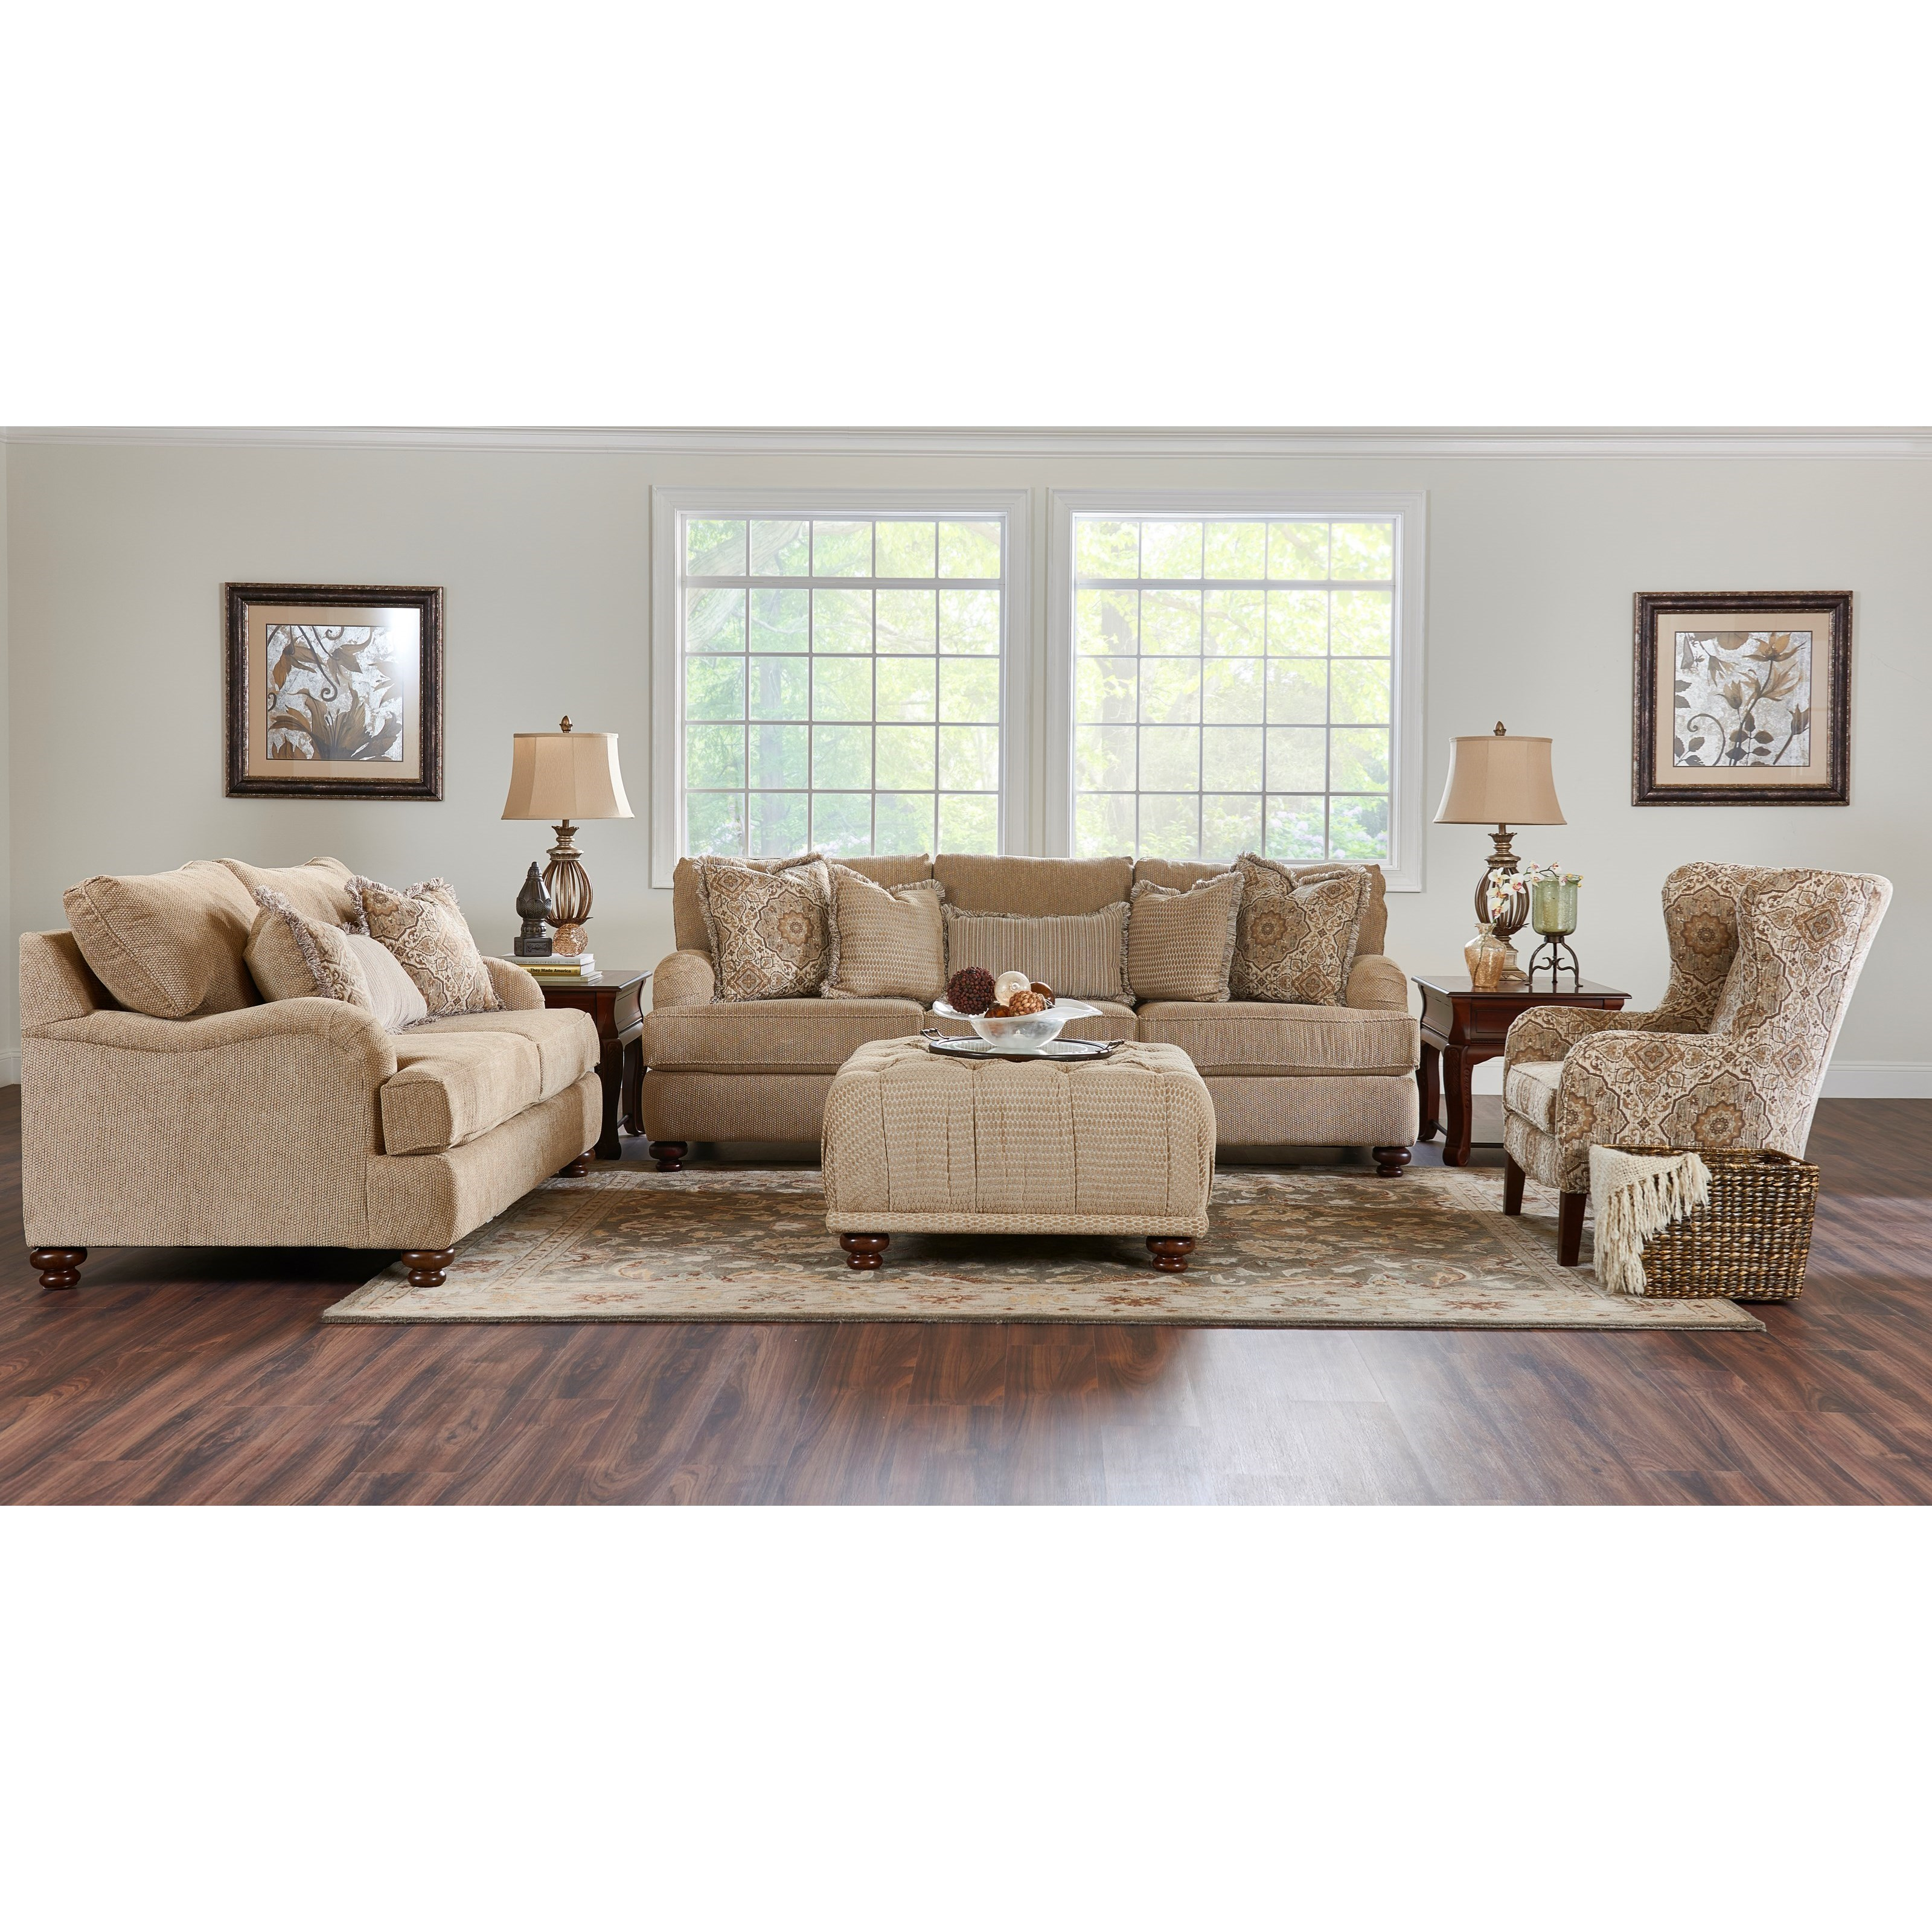 city furniture living room set bed for klaussner declan group value by